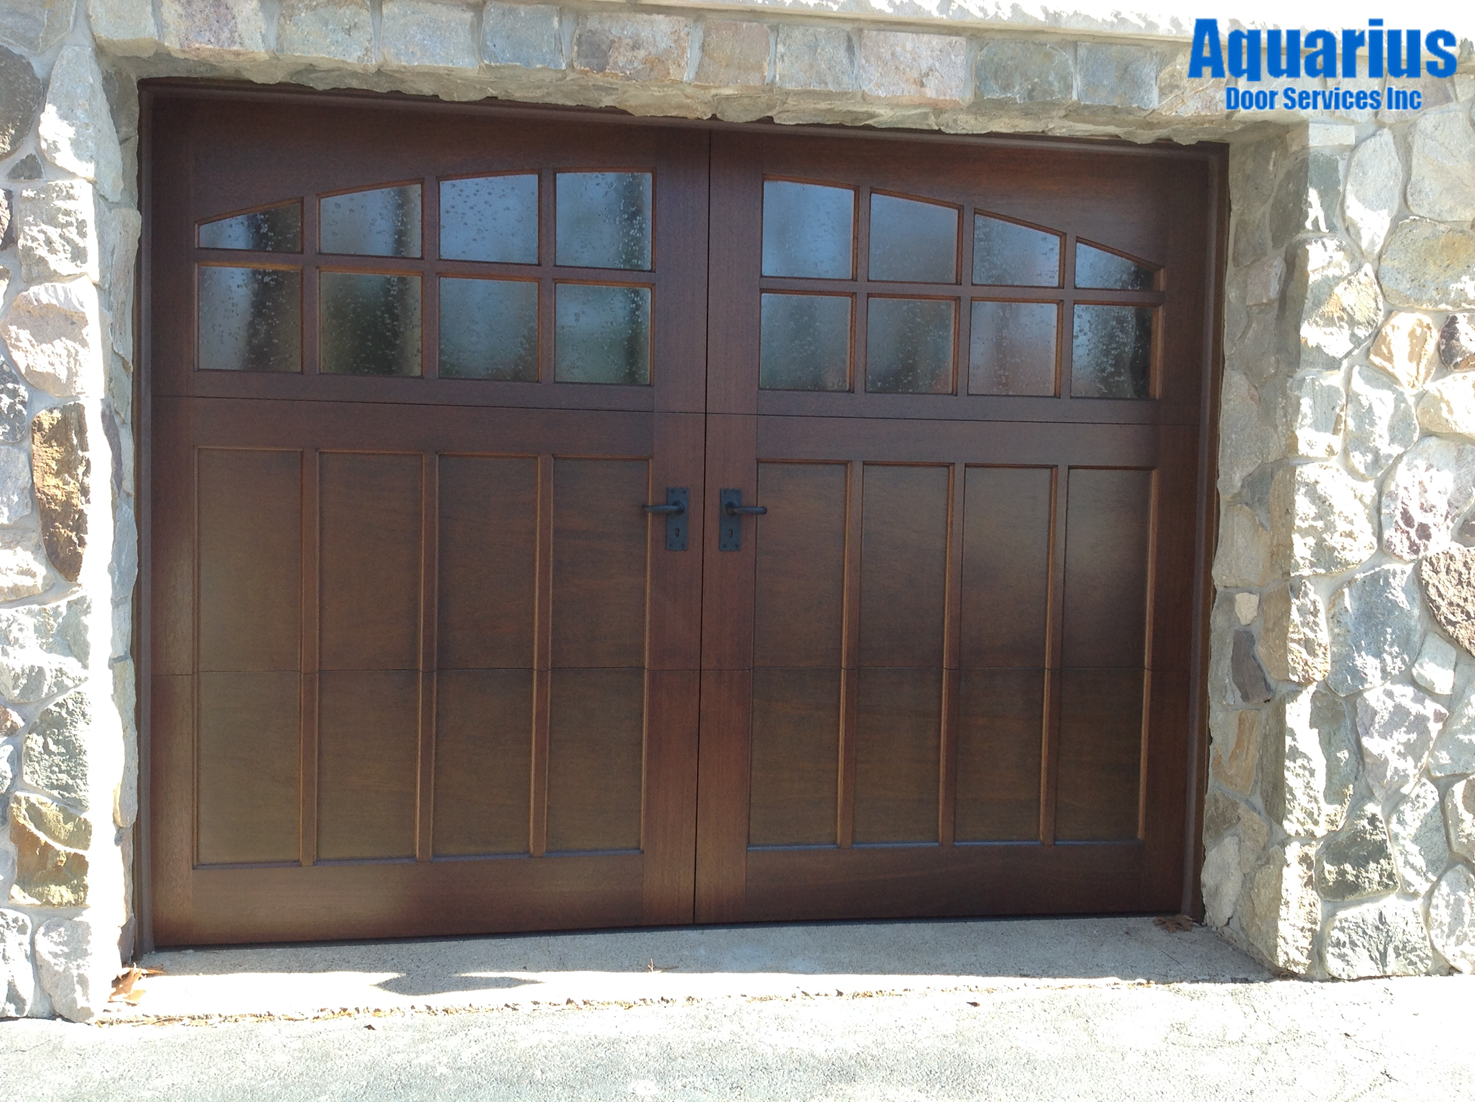 House with wood garage door - Find This Pin And More On Clopay Wood Carriage House Garage Doors